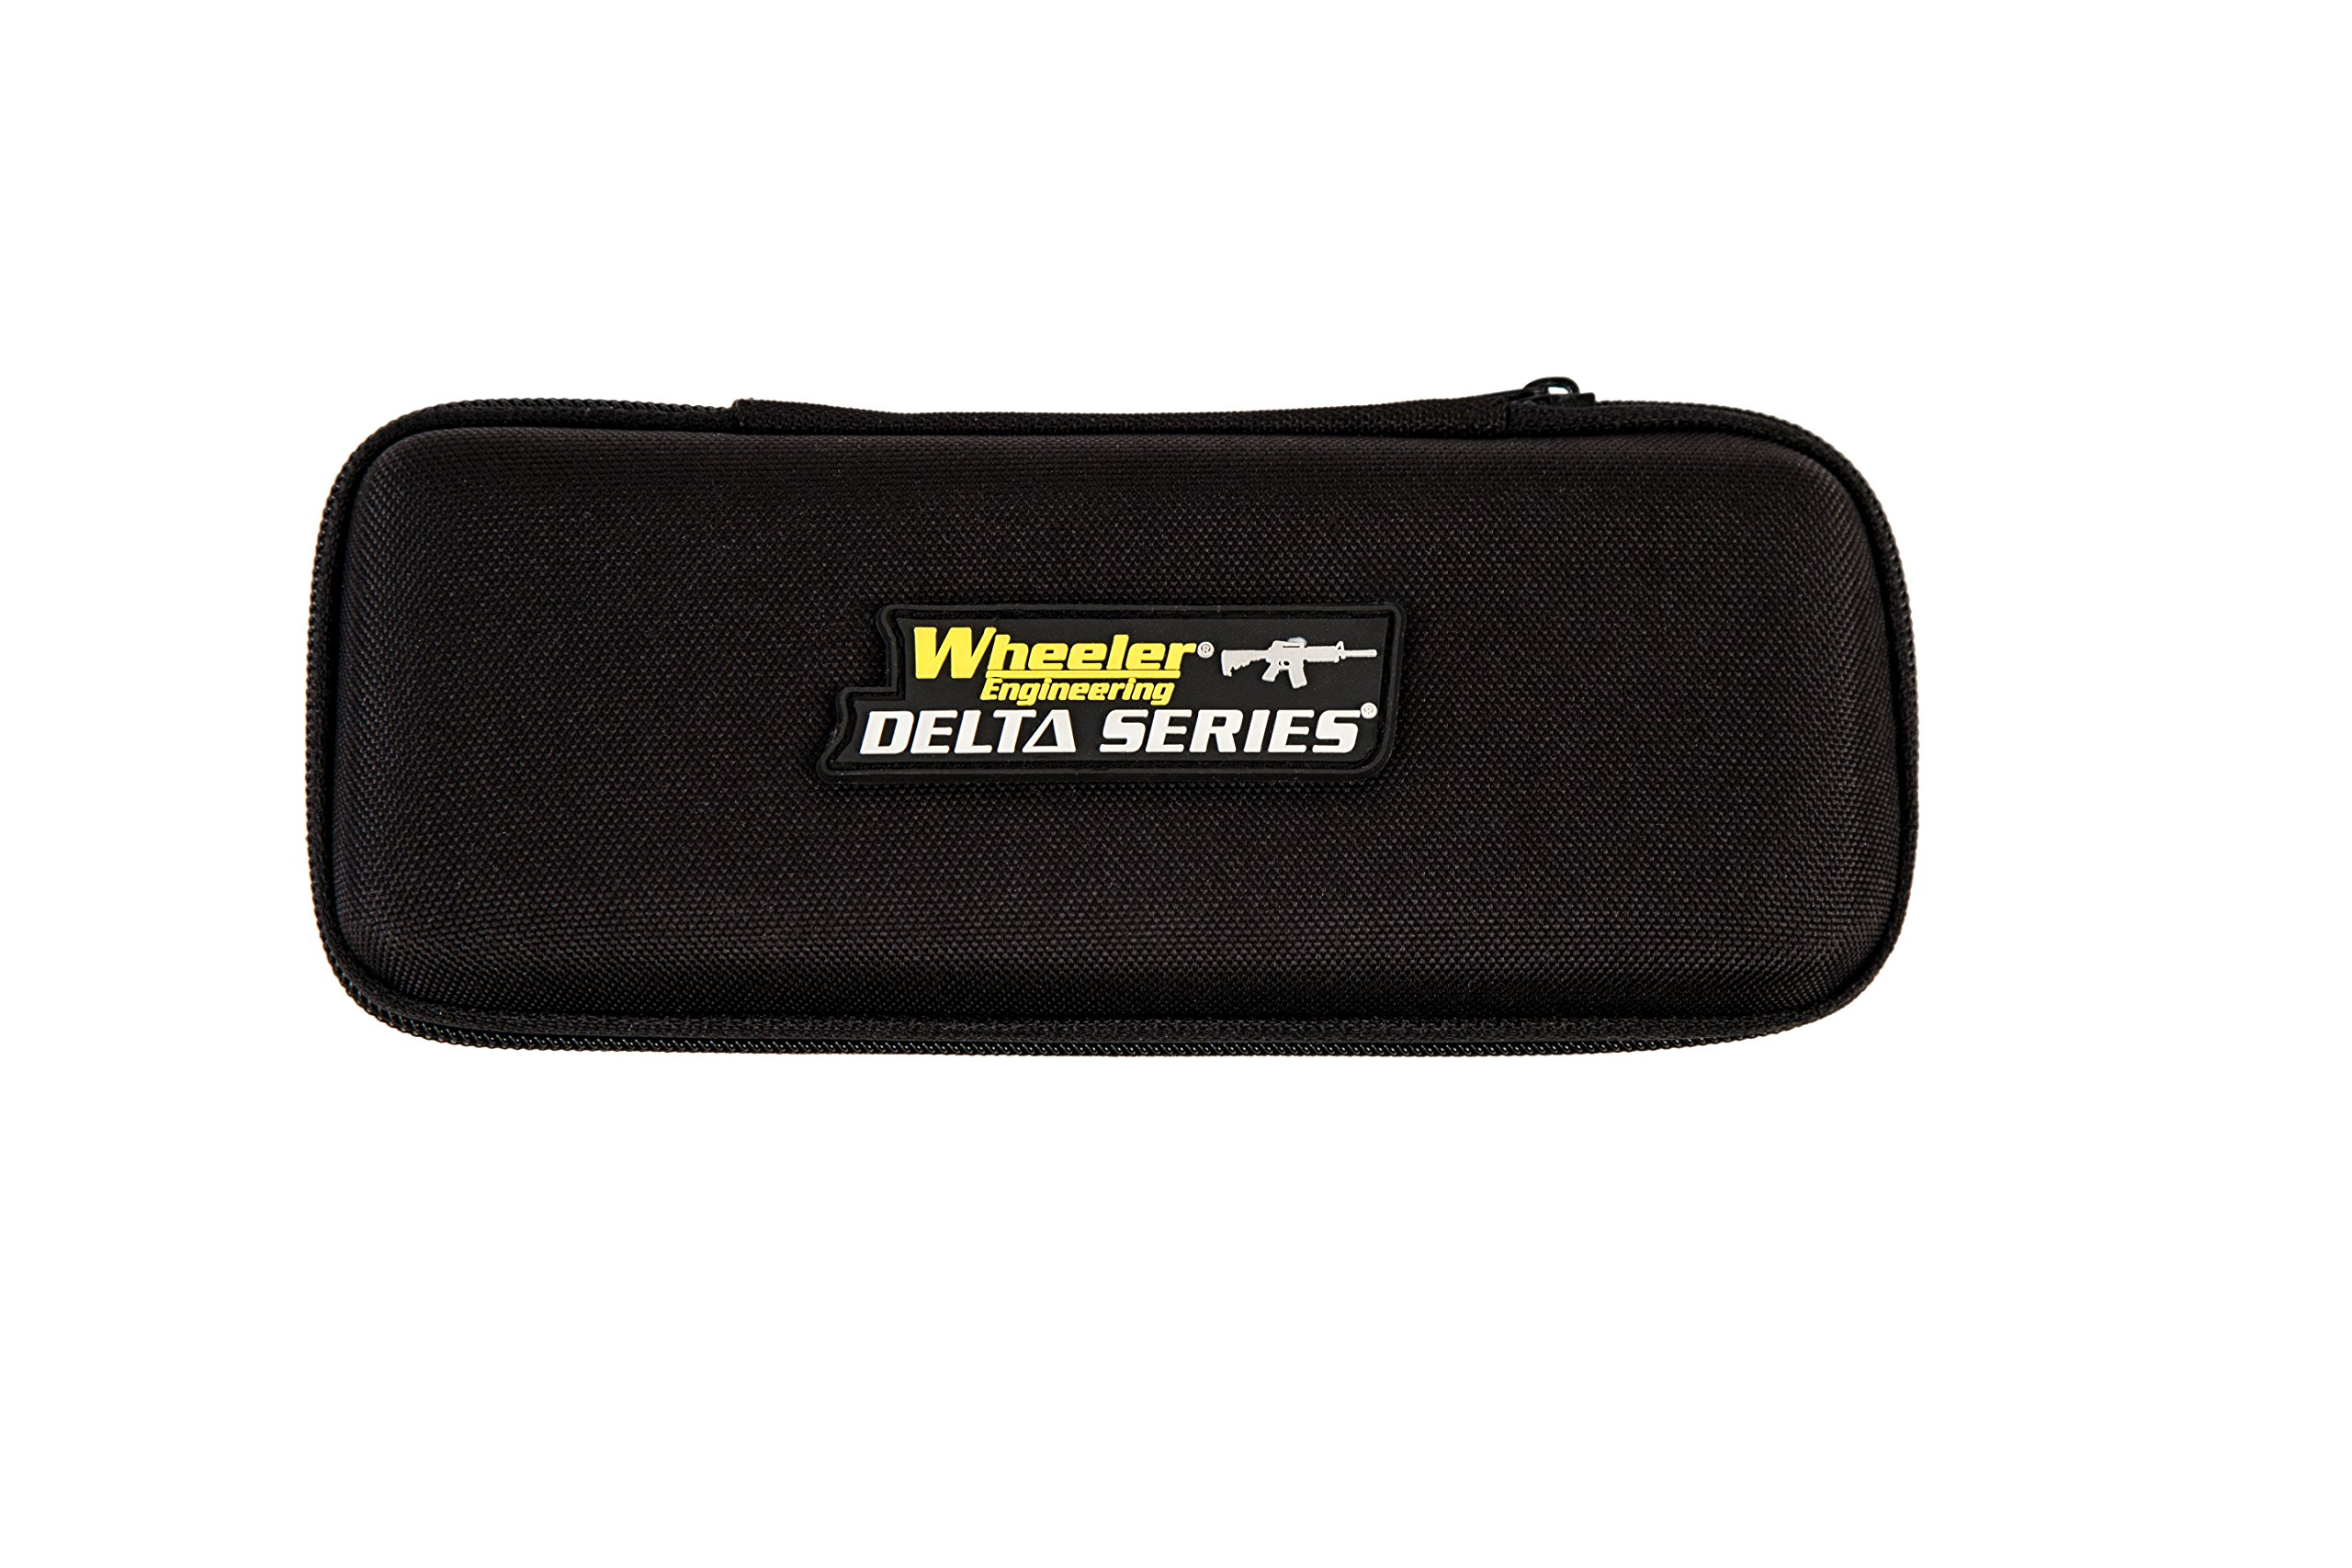 Wheeler Compact Tactical Rifle Cleaning Kit for .22 and .30 Caliber Long Guns by Wheeler (Image #3)